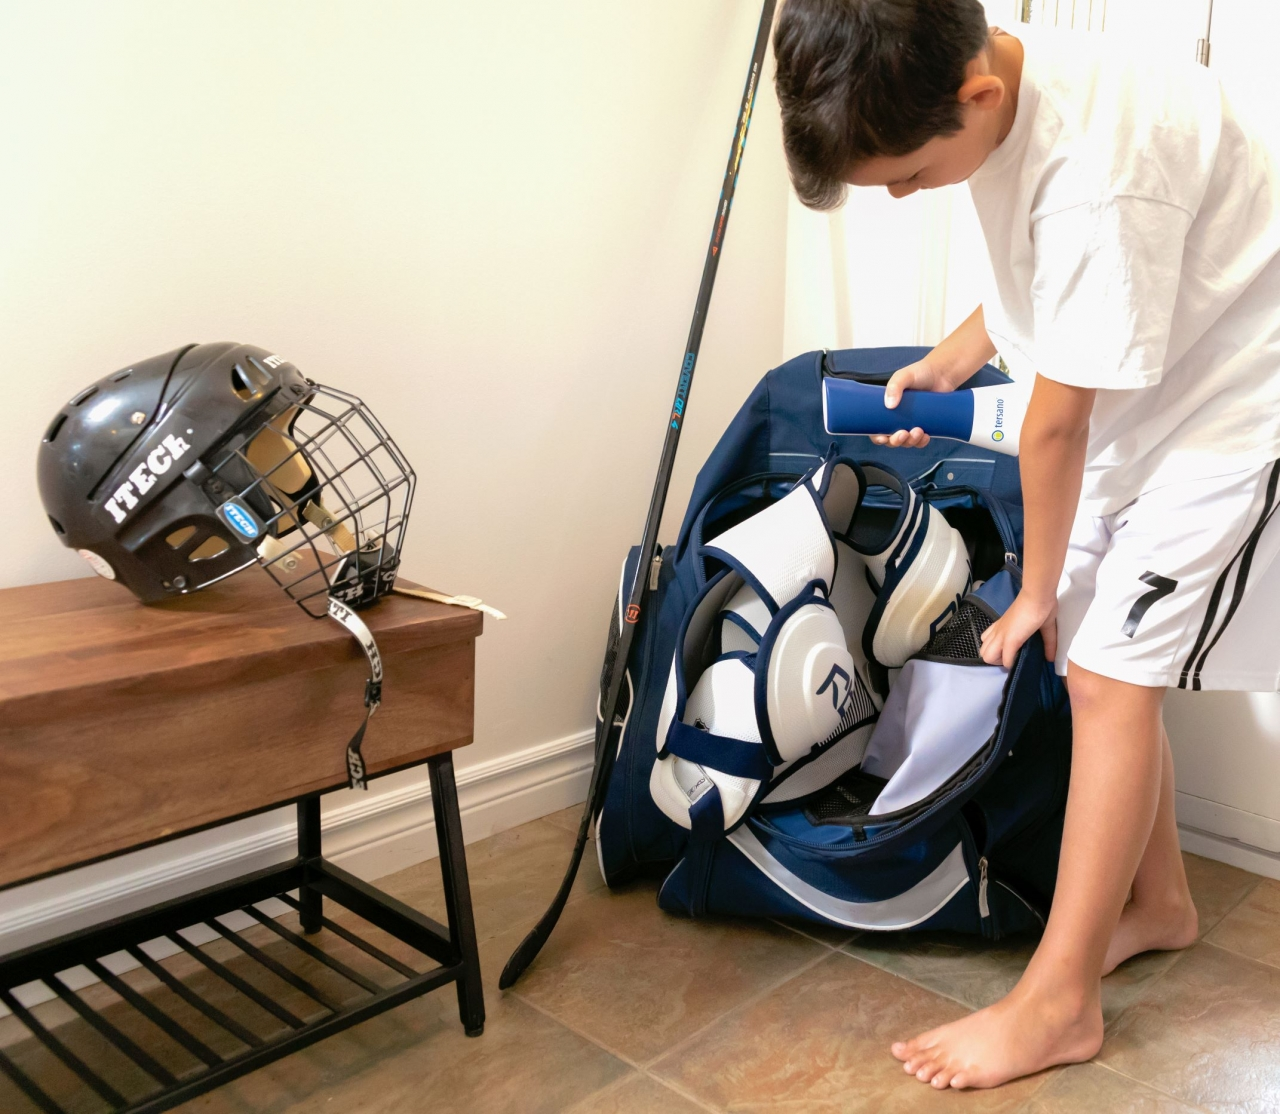 Cleaning gear